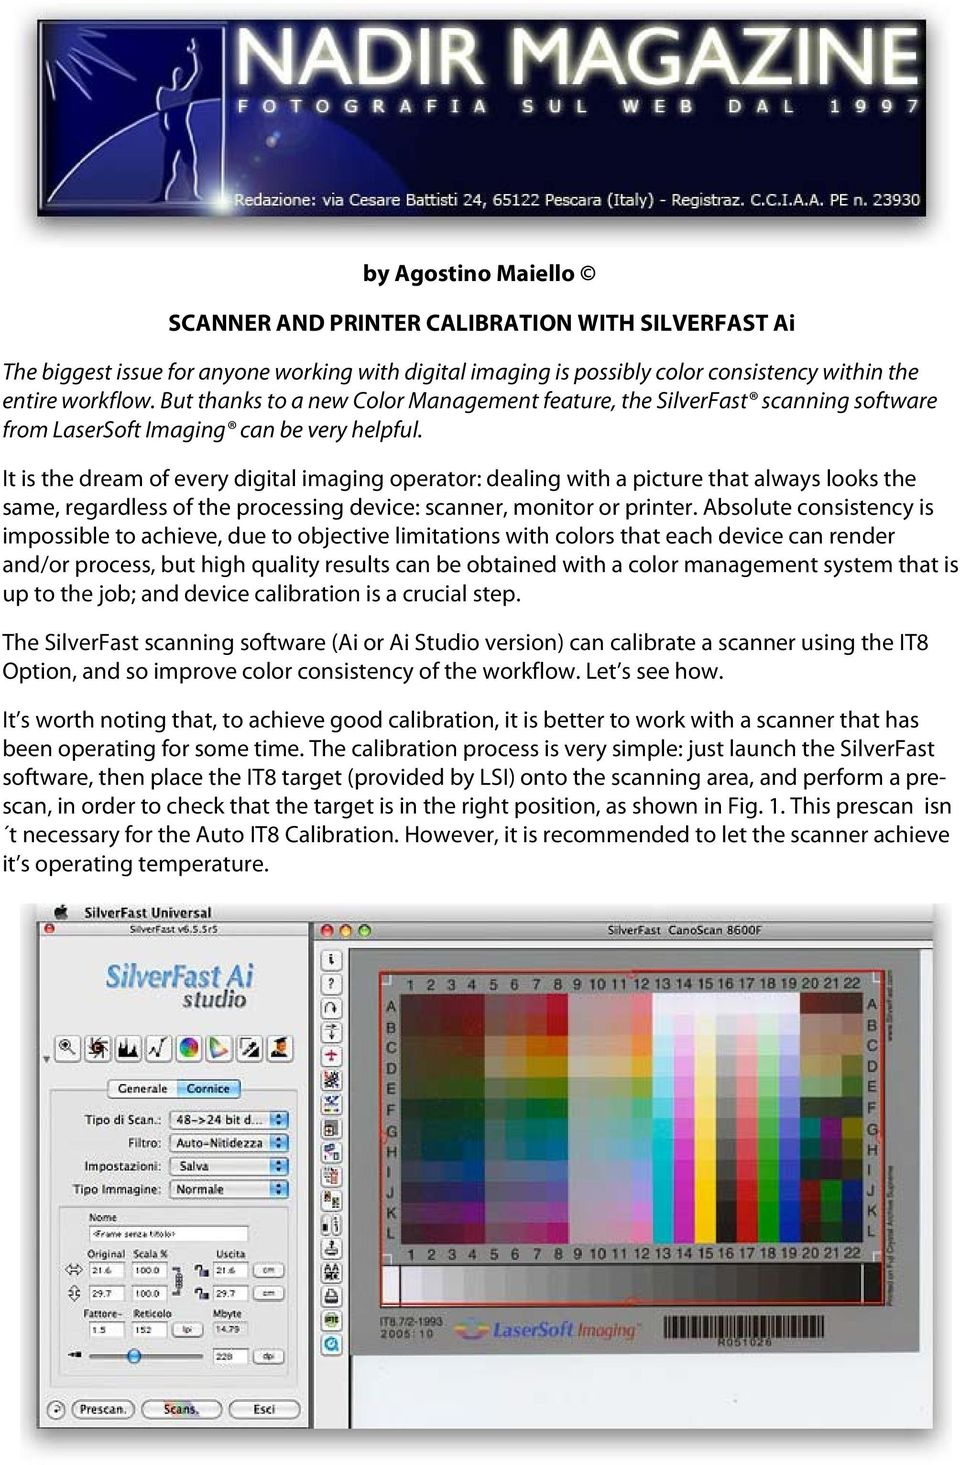 by Agostino Maiello SCANNER AND PRINTER CALIBRATION WITH